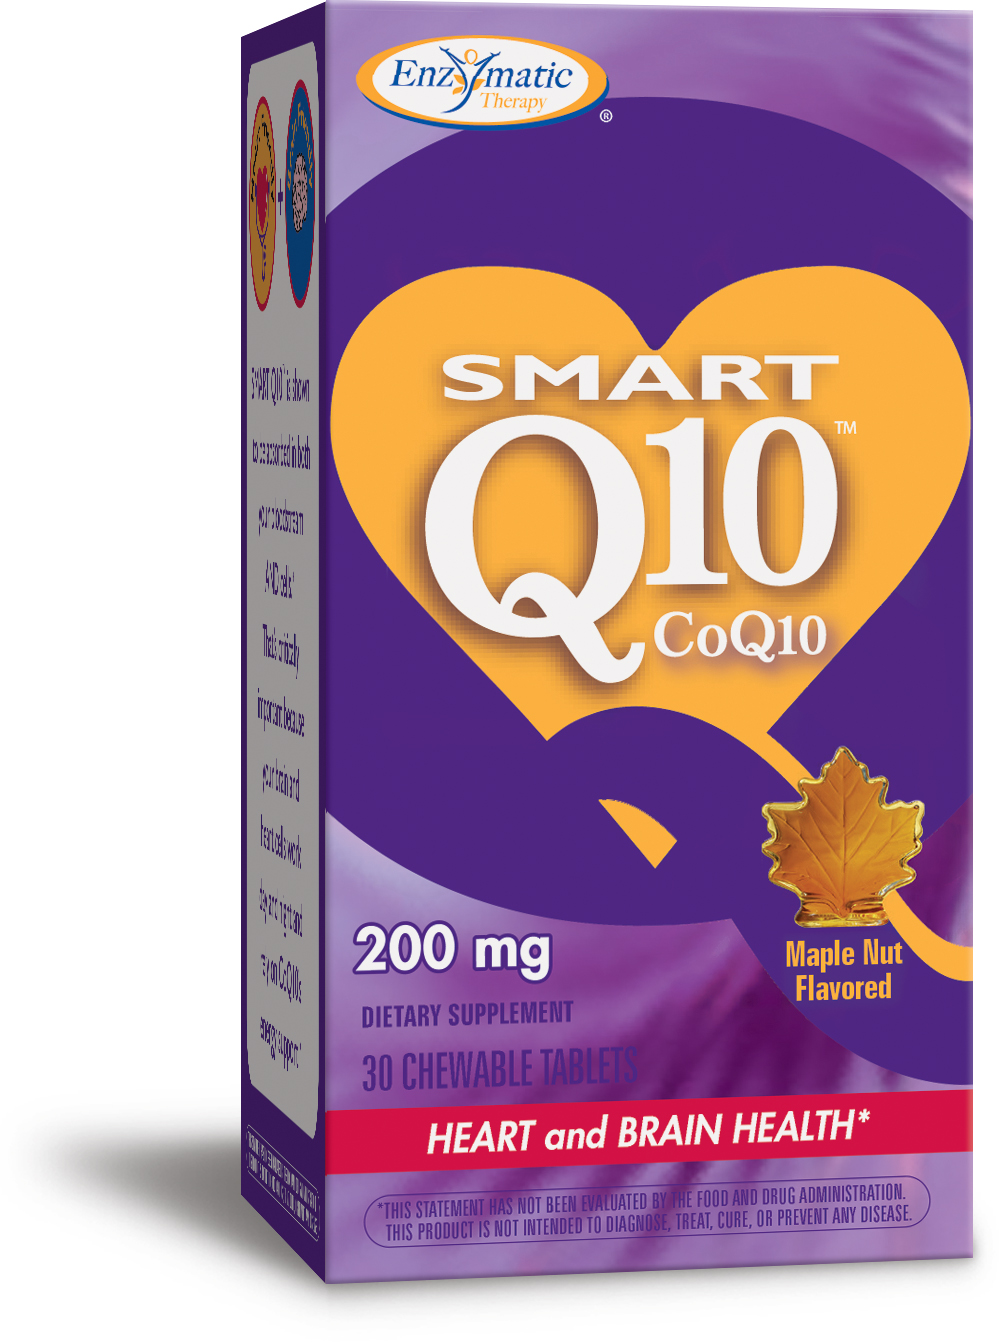 Smart Q10 Maple Nut Flavor 200 mg 30 Chewable tabs by Enzymatic Therapy